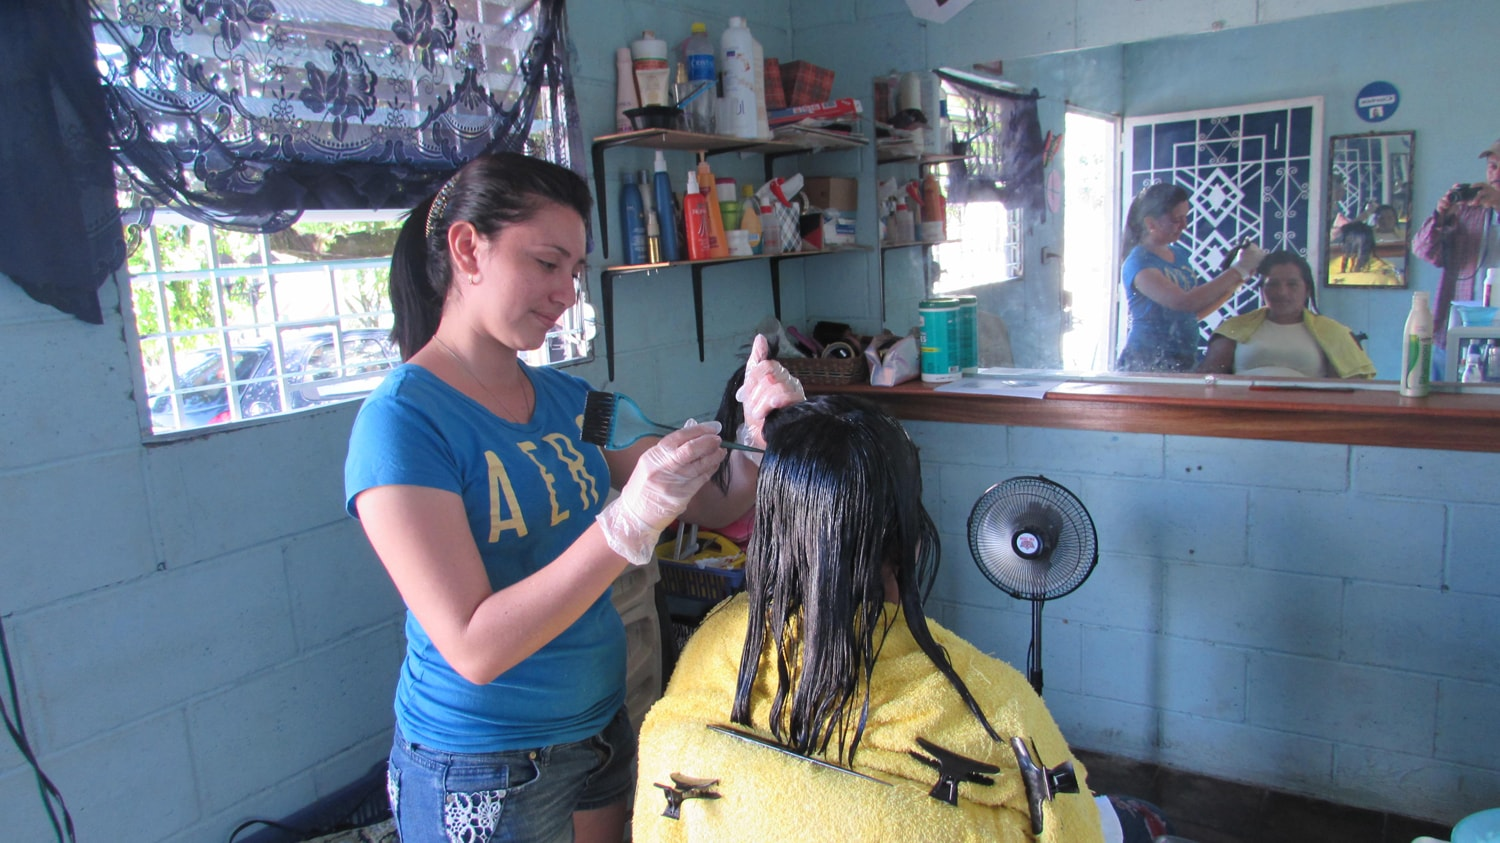 A young woman dyes hair in a hair studio.